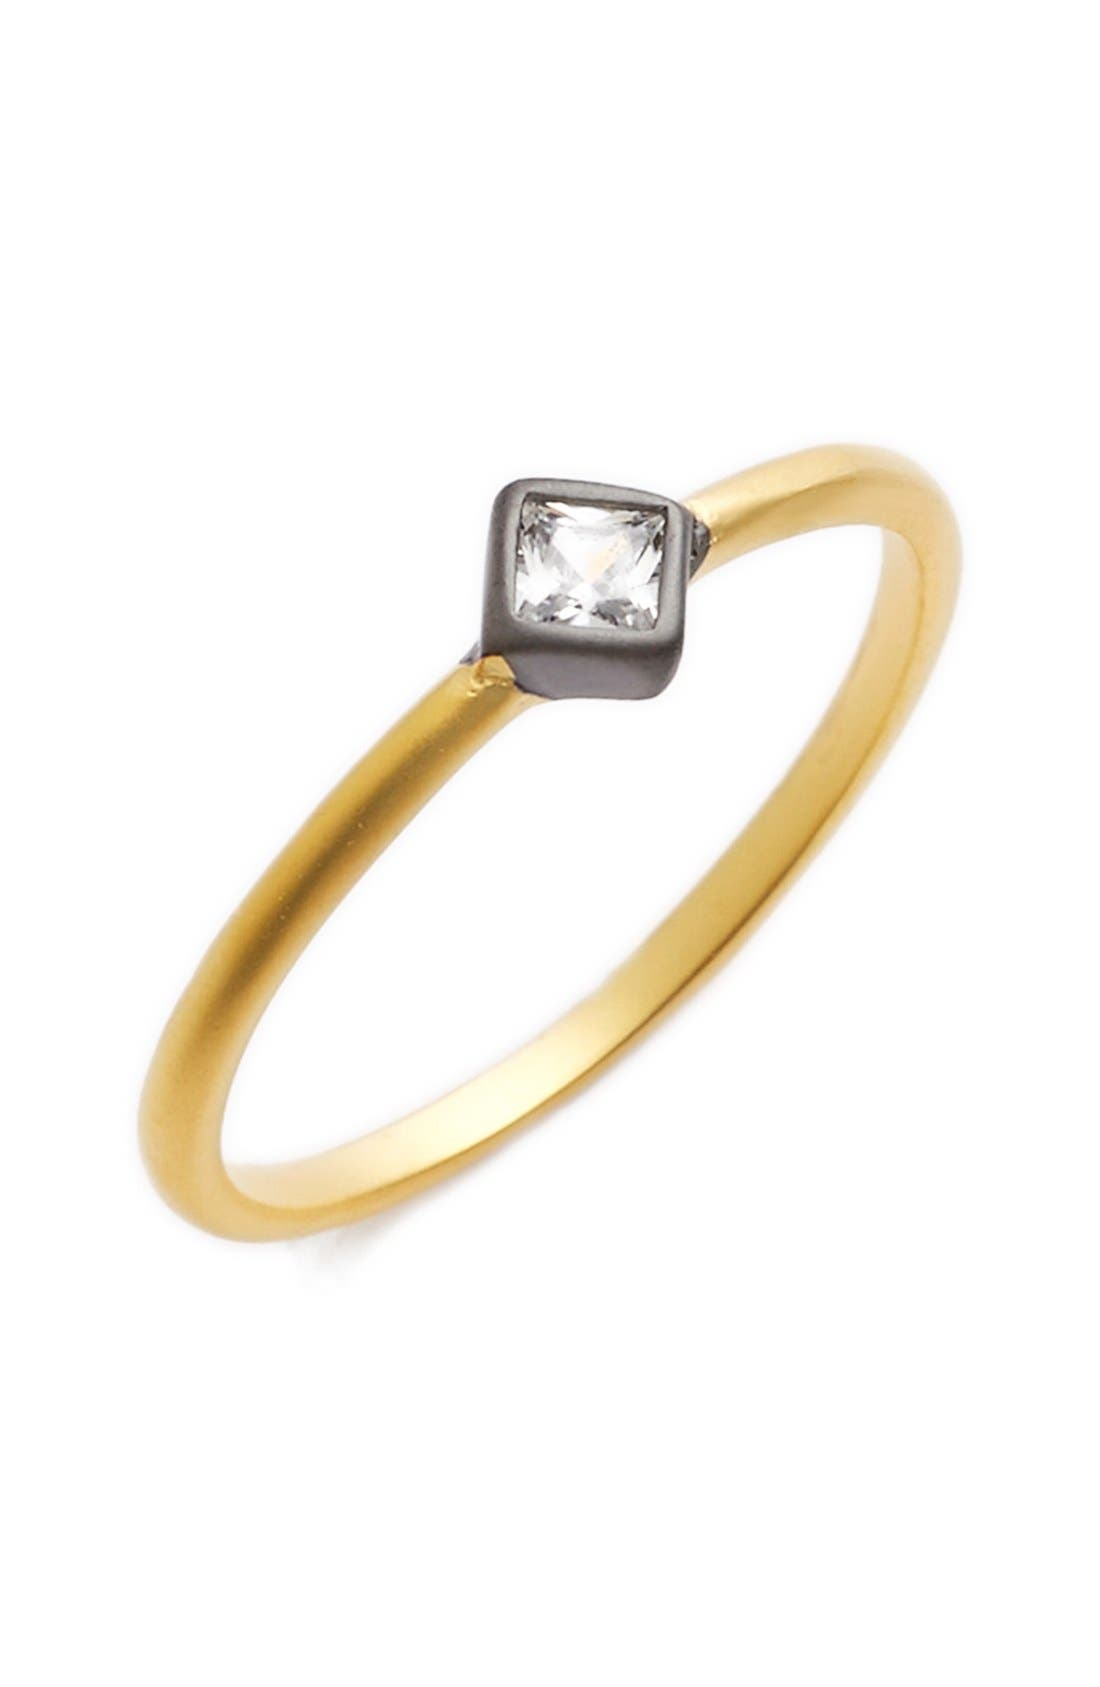 'Double Helix' Stackable Bezel Ring,                             Main thumbnail 1, color,                             Gold/ Black